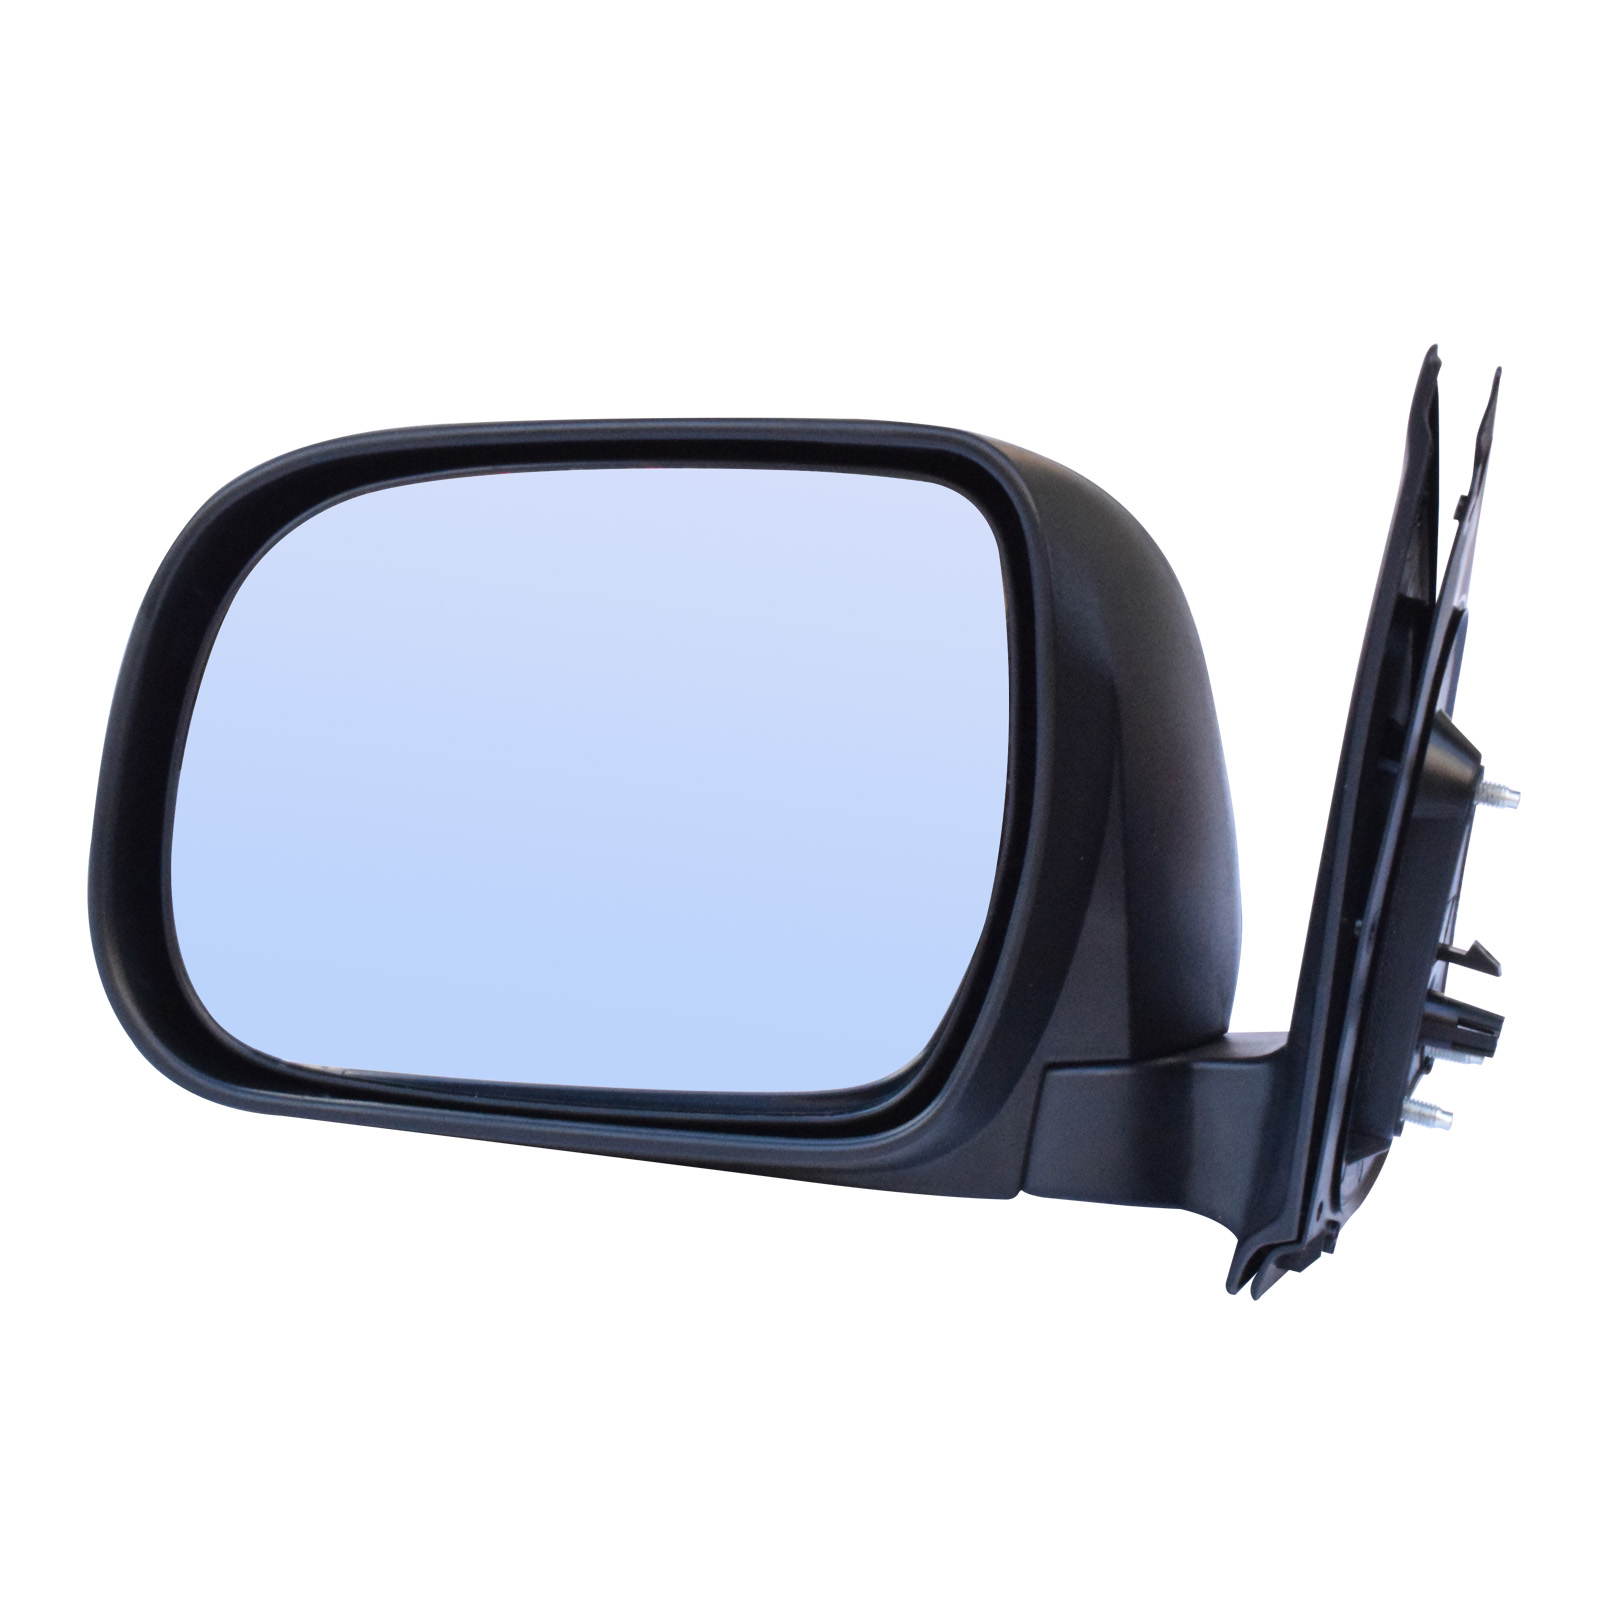 Fit For Toyota Hilux '05-'13 Ute BLACK Manual Side Door Mirror LEFT image